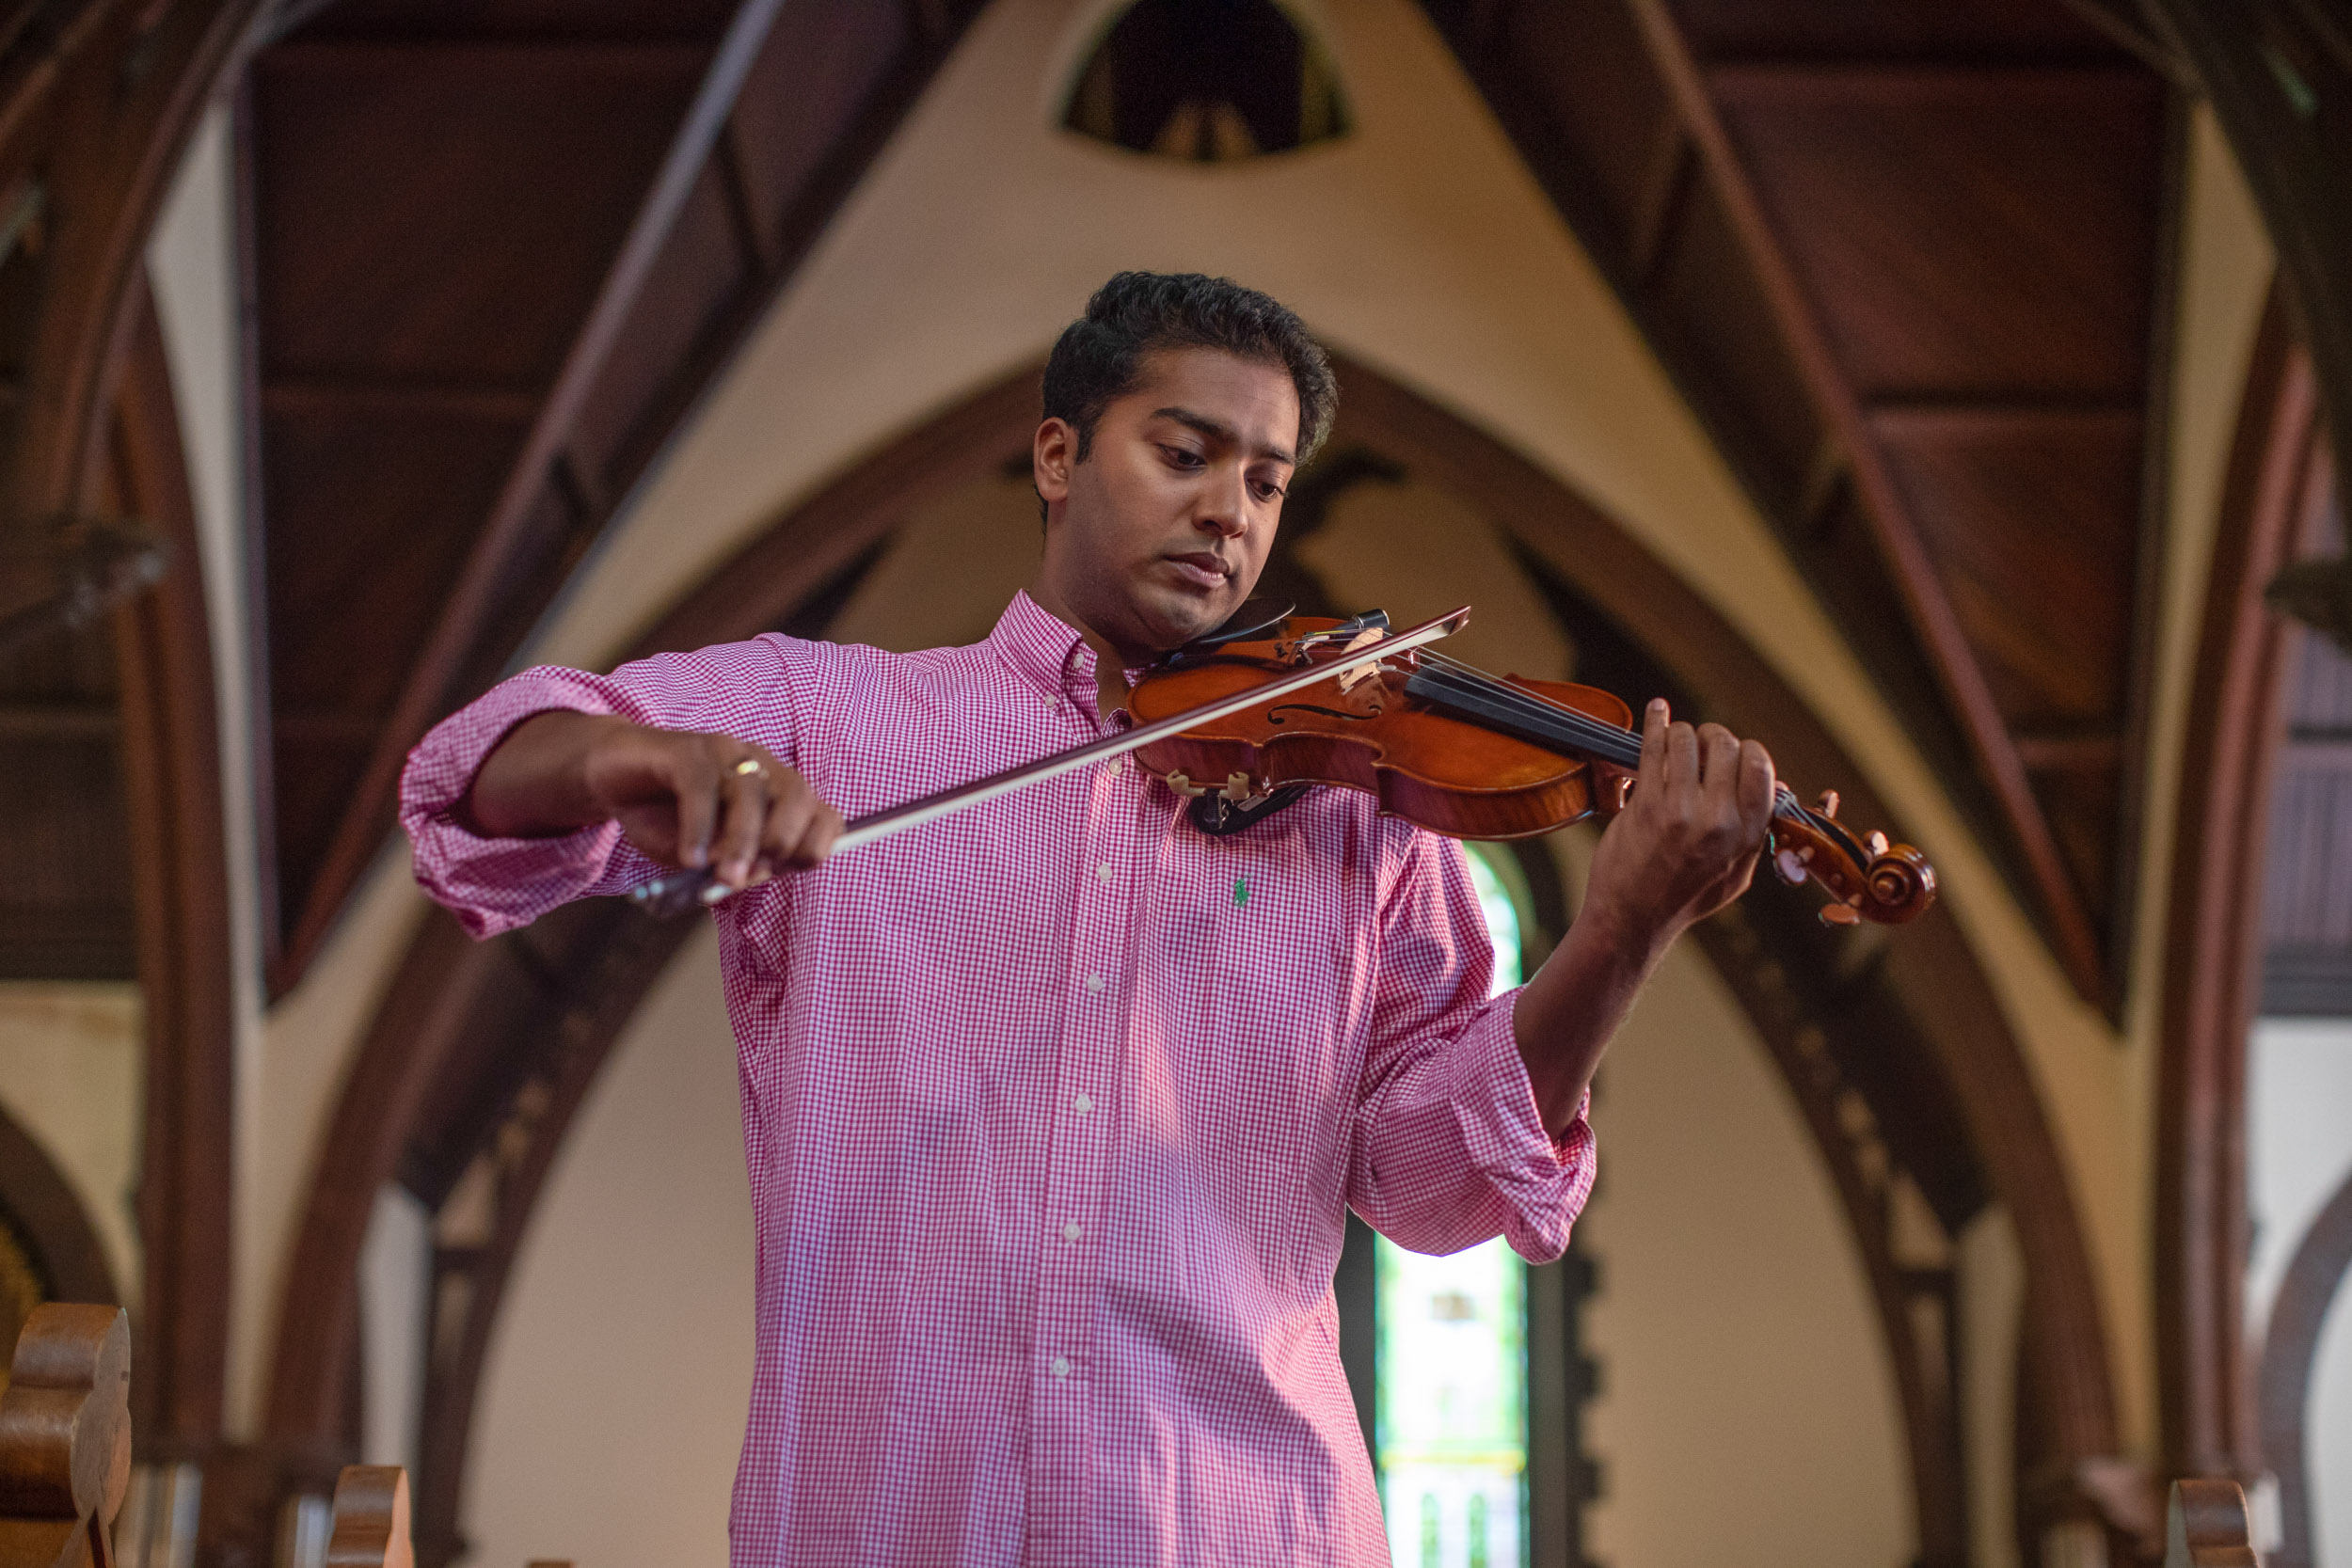 """Earlier this spring, Samuel's sonorous performance of """"Ashokan Farewell,"""" the theme music from Ken Burns' popular documentary series """"The Civil War,"""" filled the sanctuary of UVA's Chapel."""